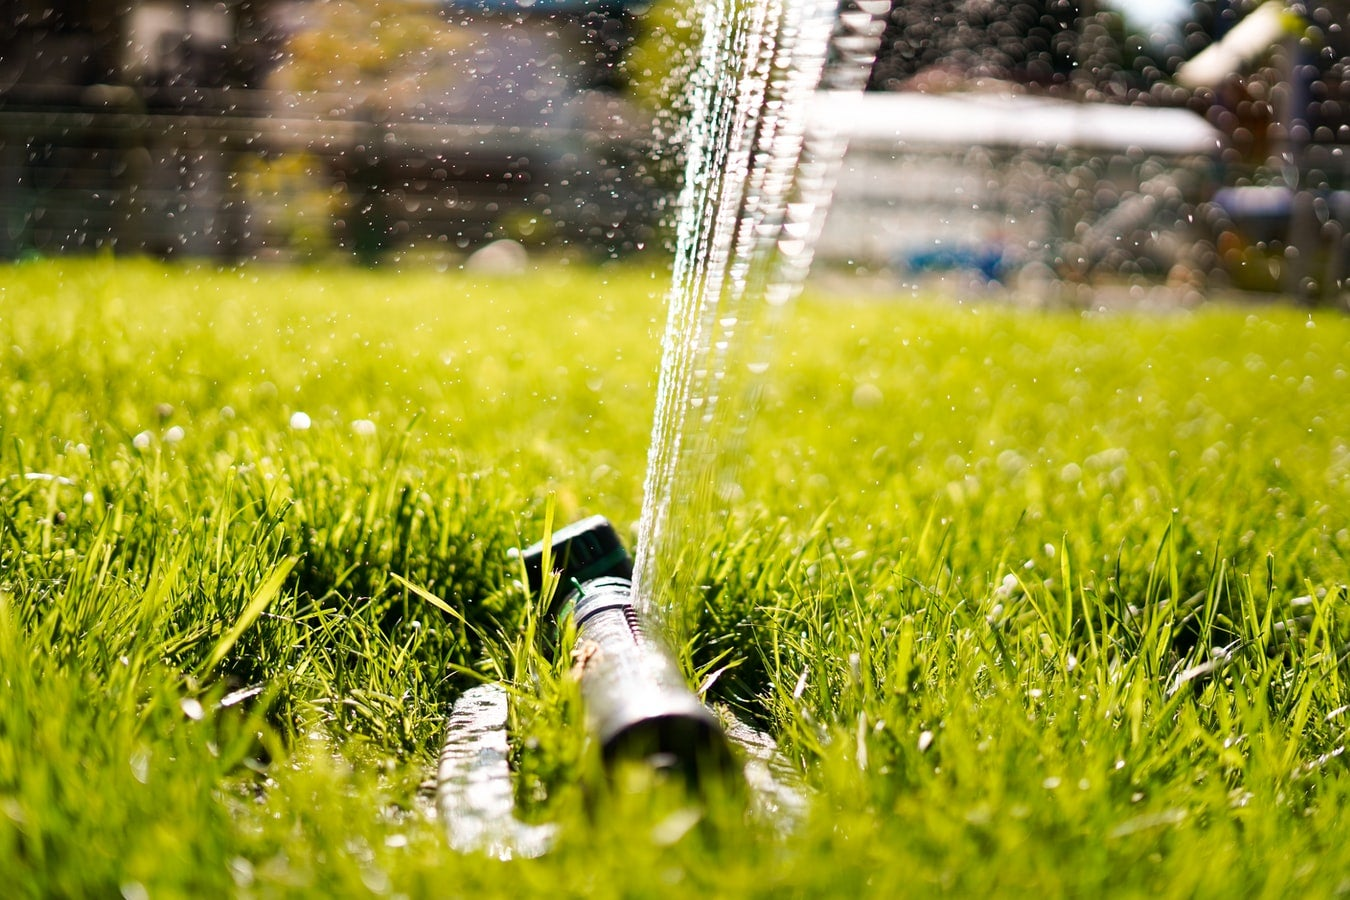 The best sprinkler system helps keep your grass healthy and green.